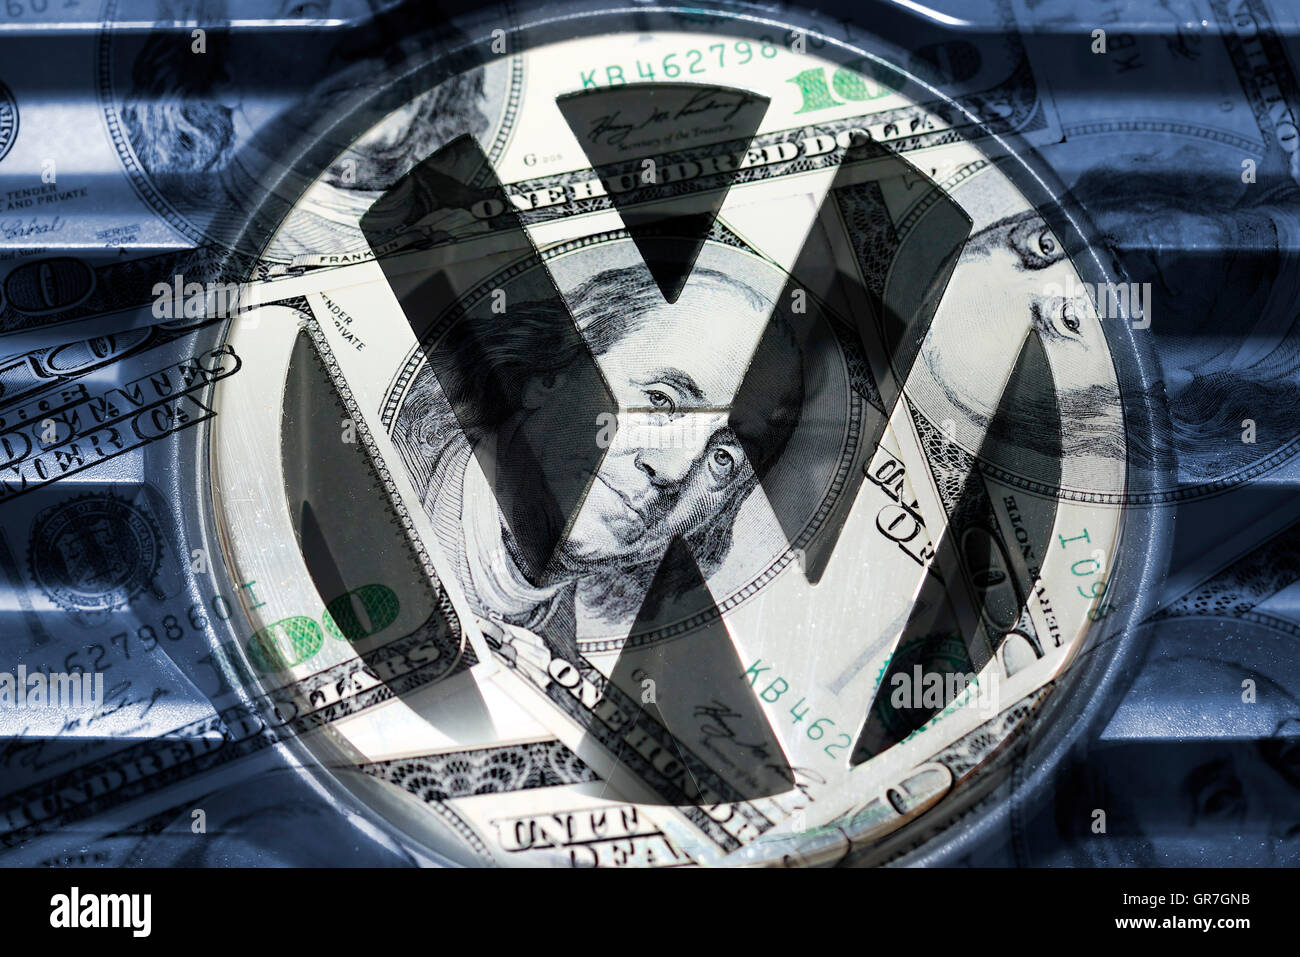 Vw Emblem And Dollar Bills, Vw Exhaust Gases Scandal - Stock Image